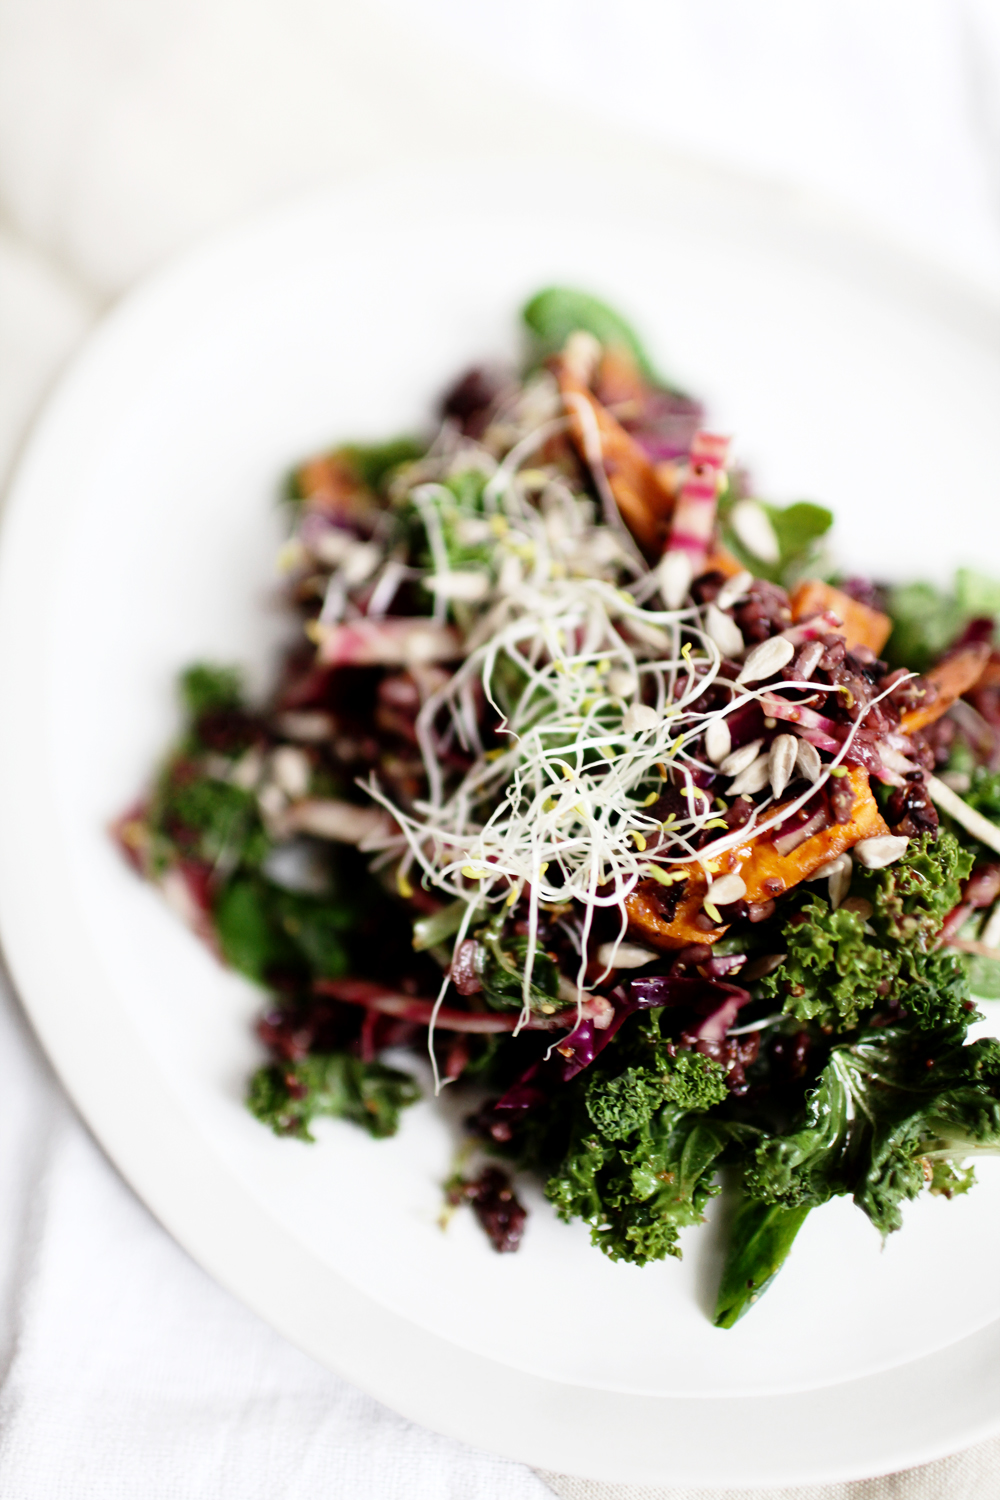 salad_kale_sweet_potato_29101601